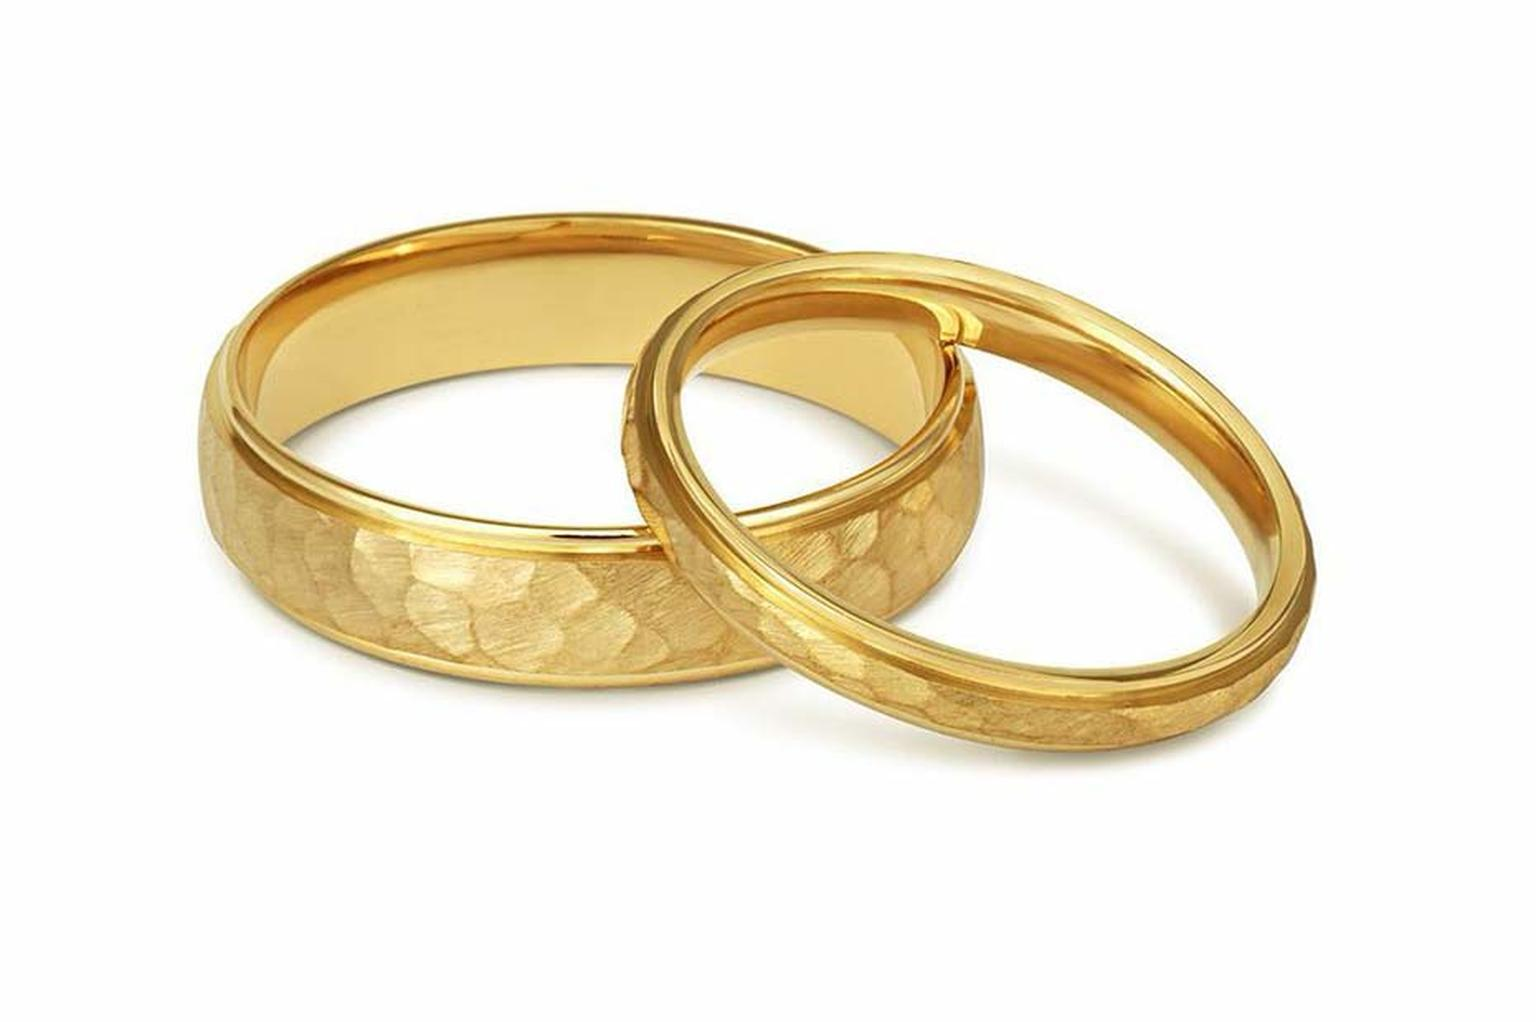 CRED ethical wedding rings in Fairtrade gold, from the new Elements collection.